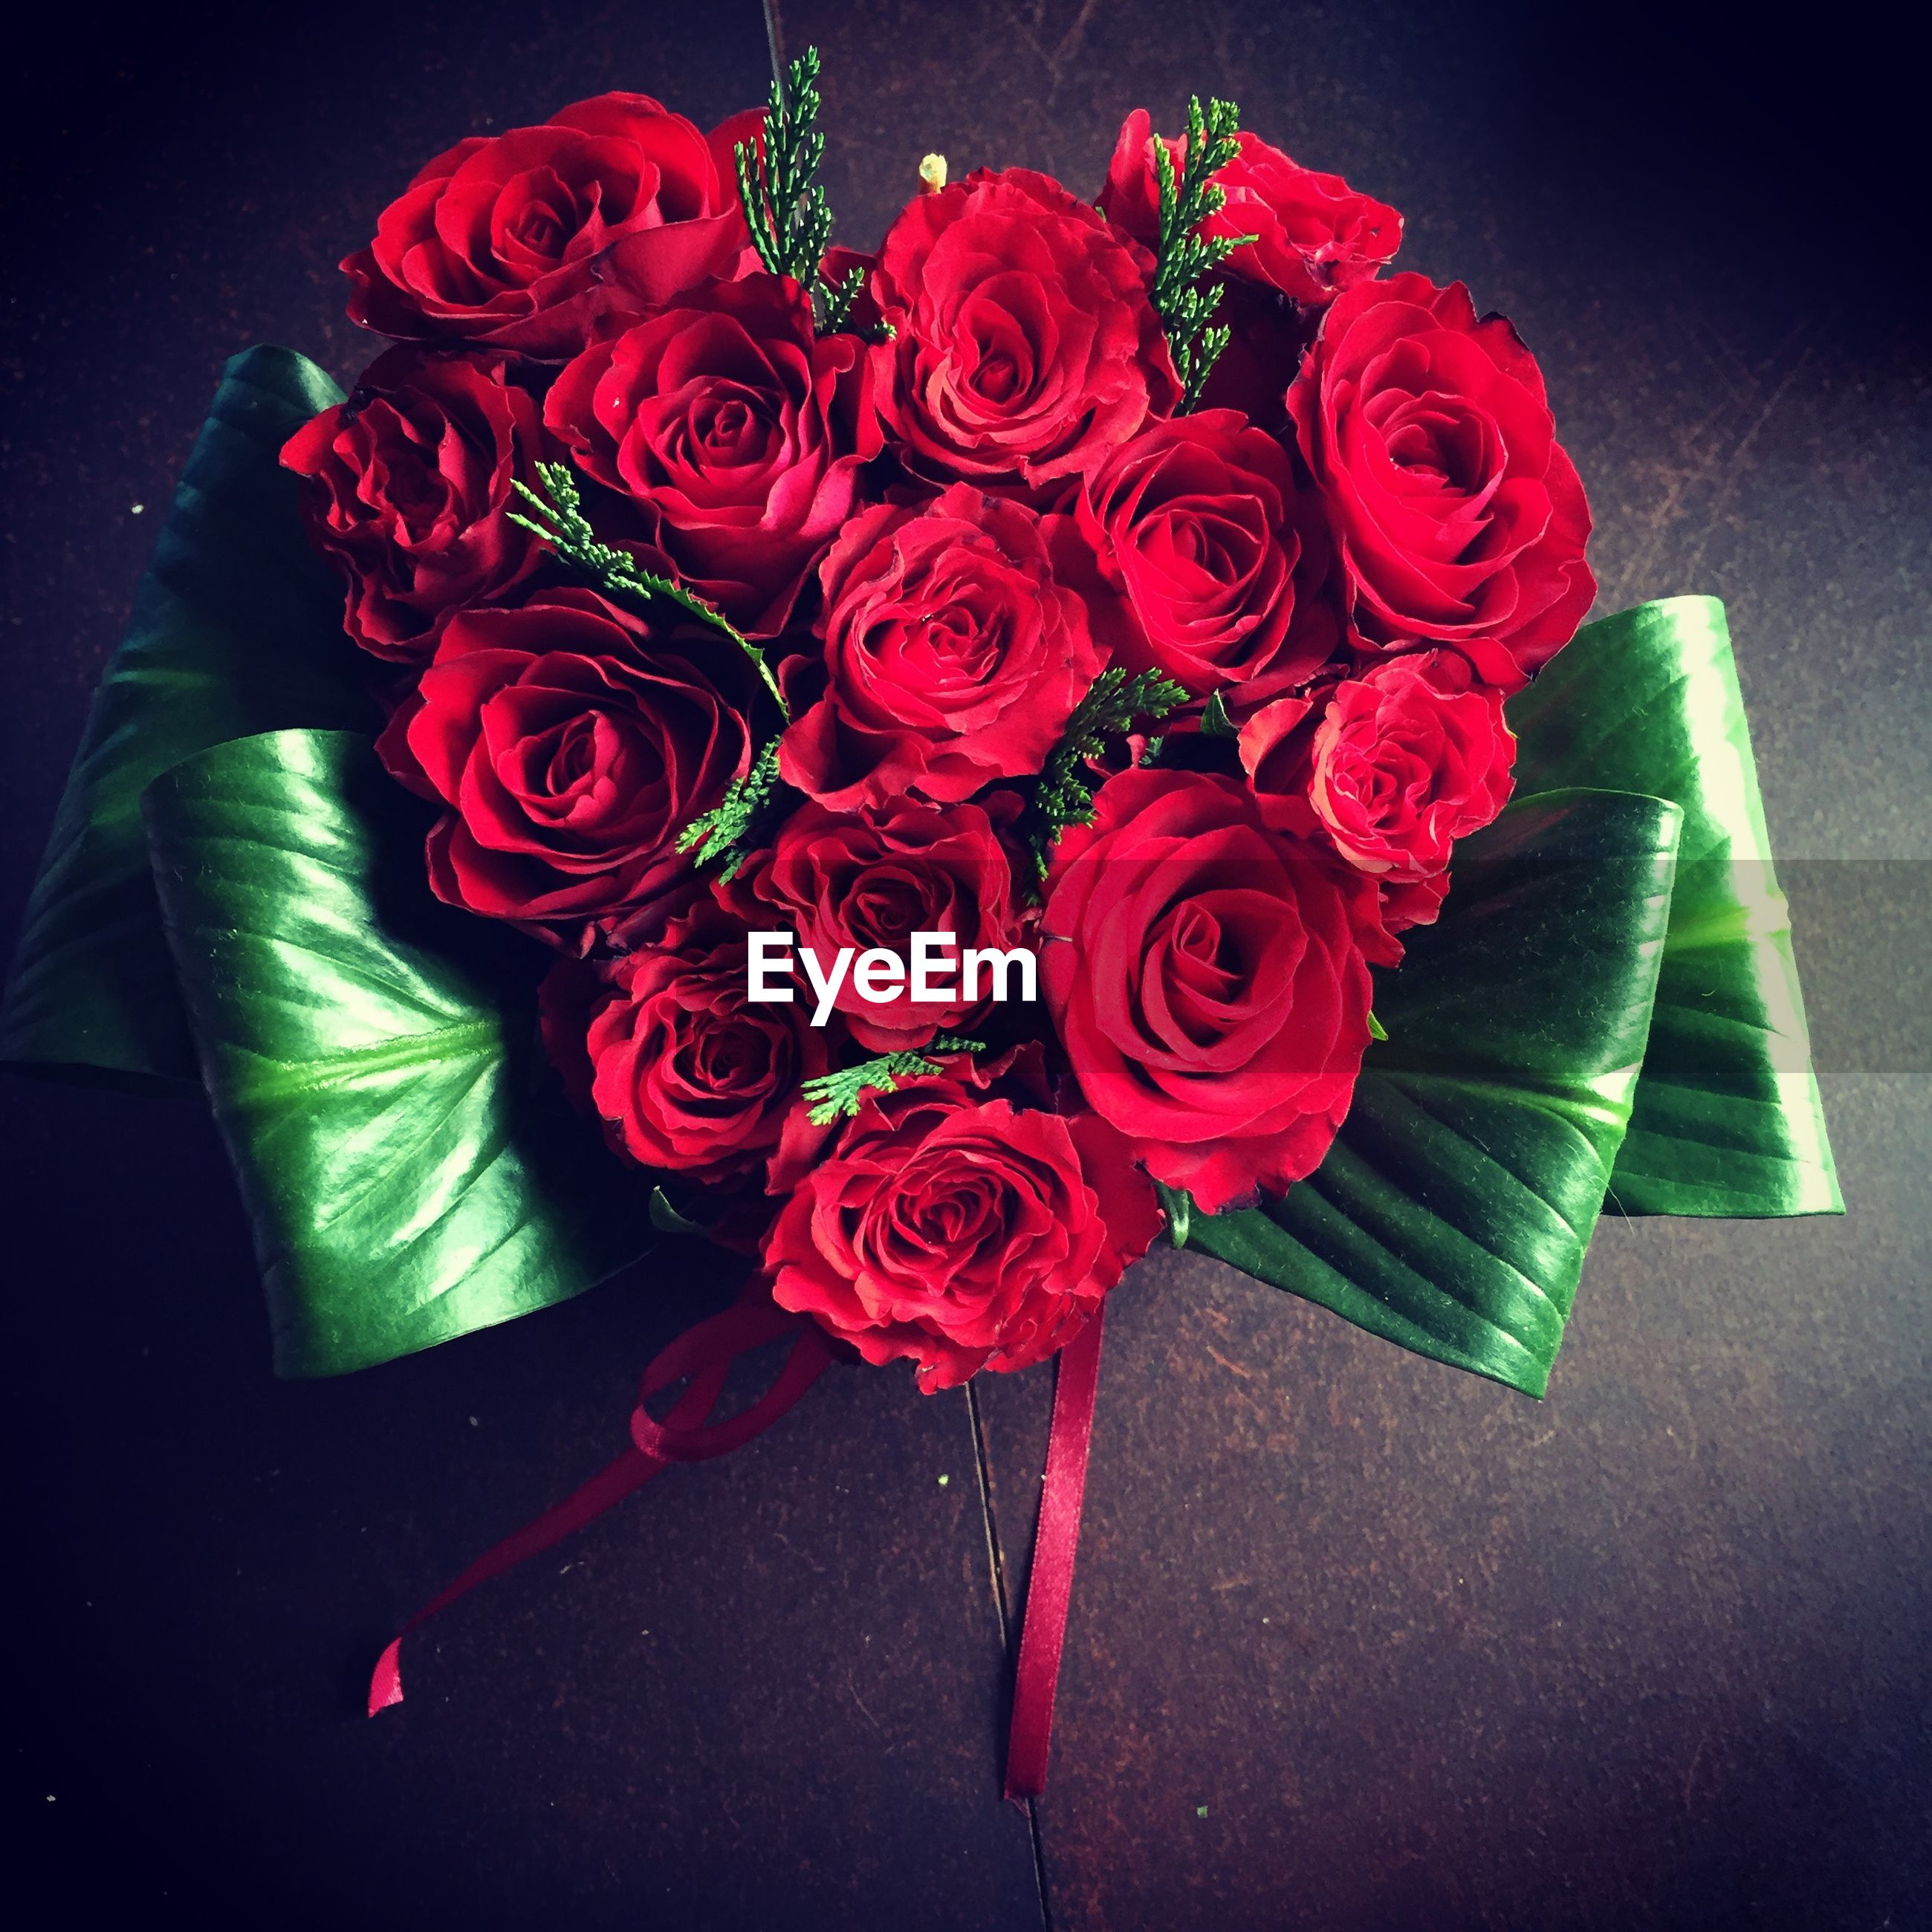 Directly above shot of roses with green bow